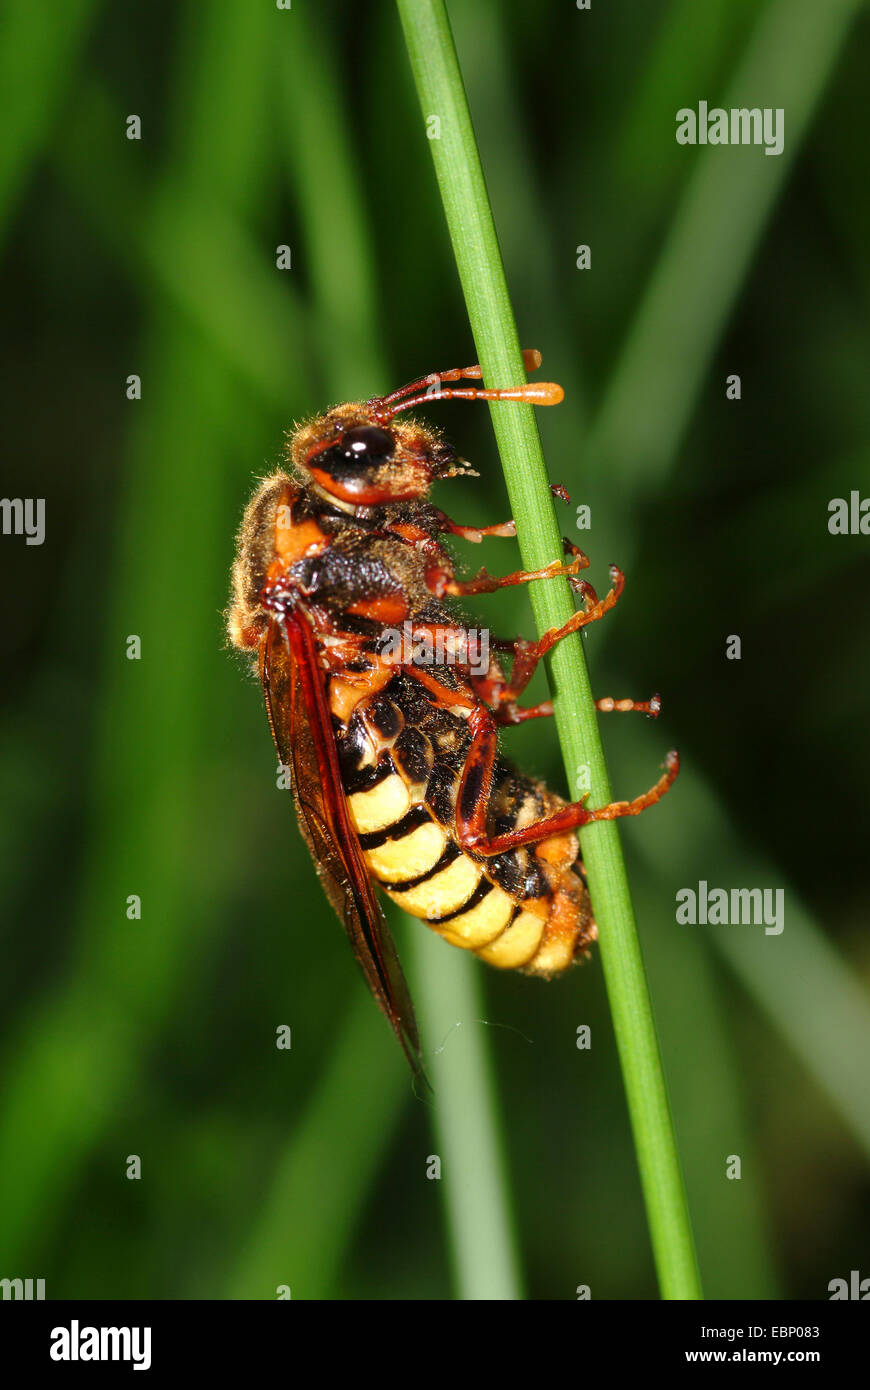 Clubhorned sawfly (Cimbex luteus), at a blade of grass, Germany - Stock Image